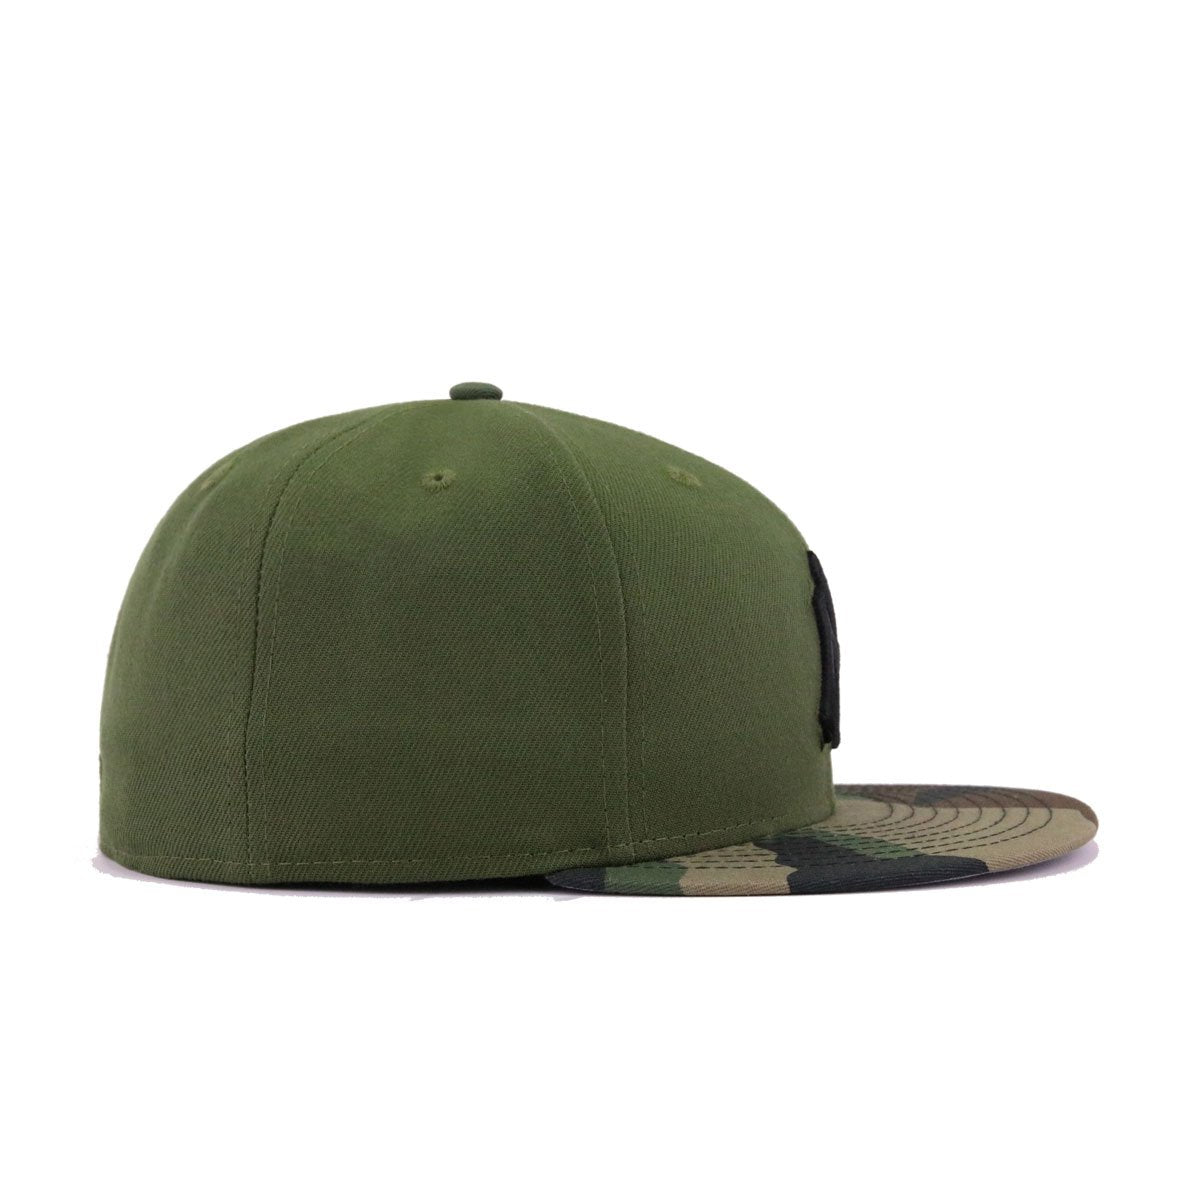 New York Yankees Rifle Green Woodland Camouflage Black New Era 59Fifty Fitted